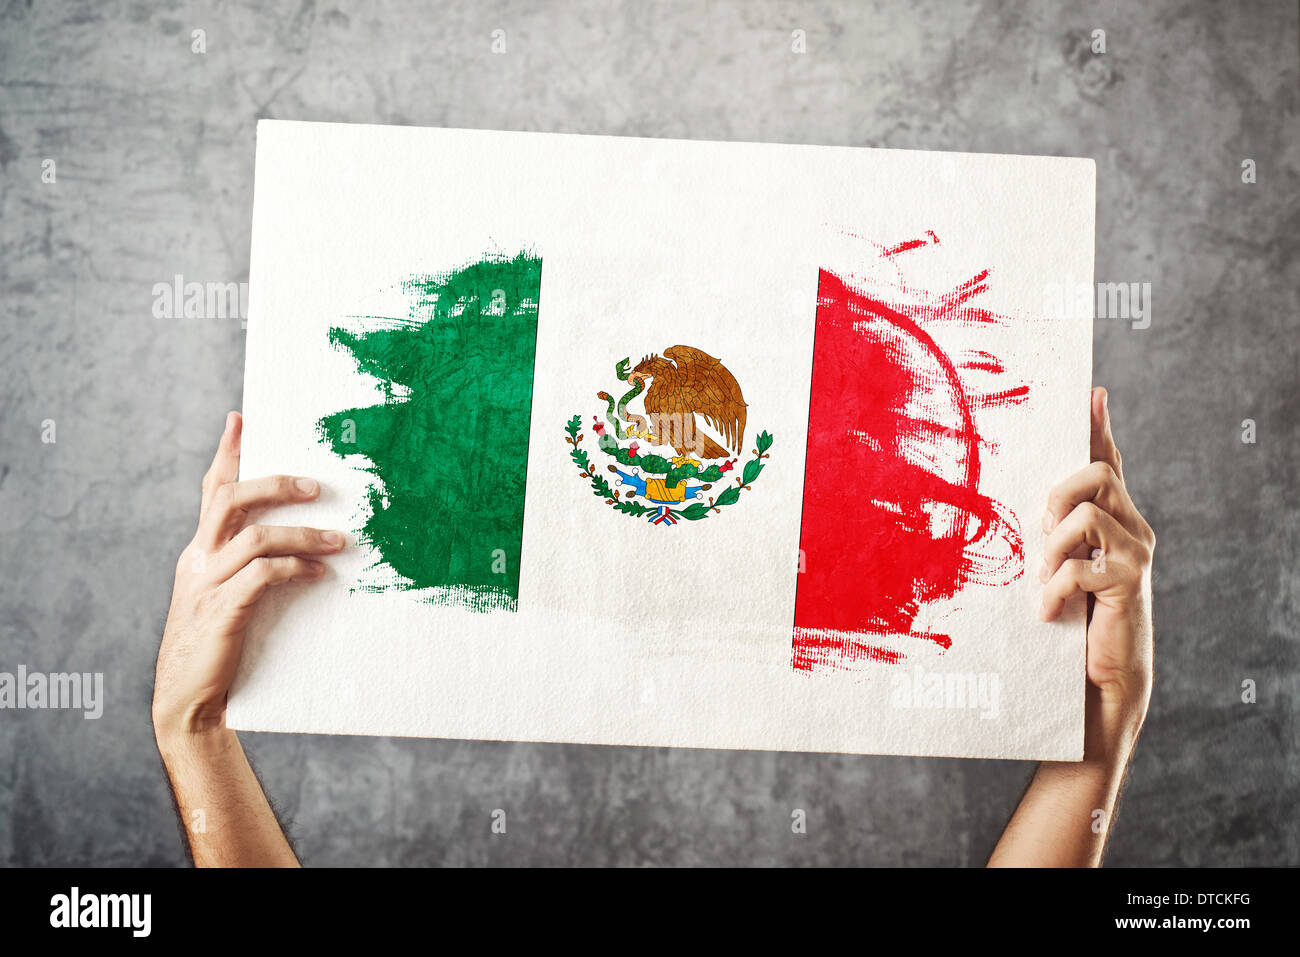 Mexico flag. Man holding banner with Mexican Flag. Supporting national team, patriotism concept. - Stock Image